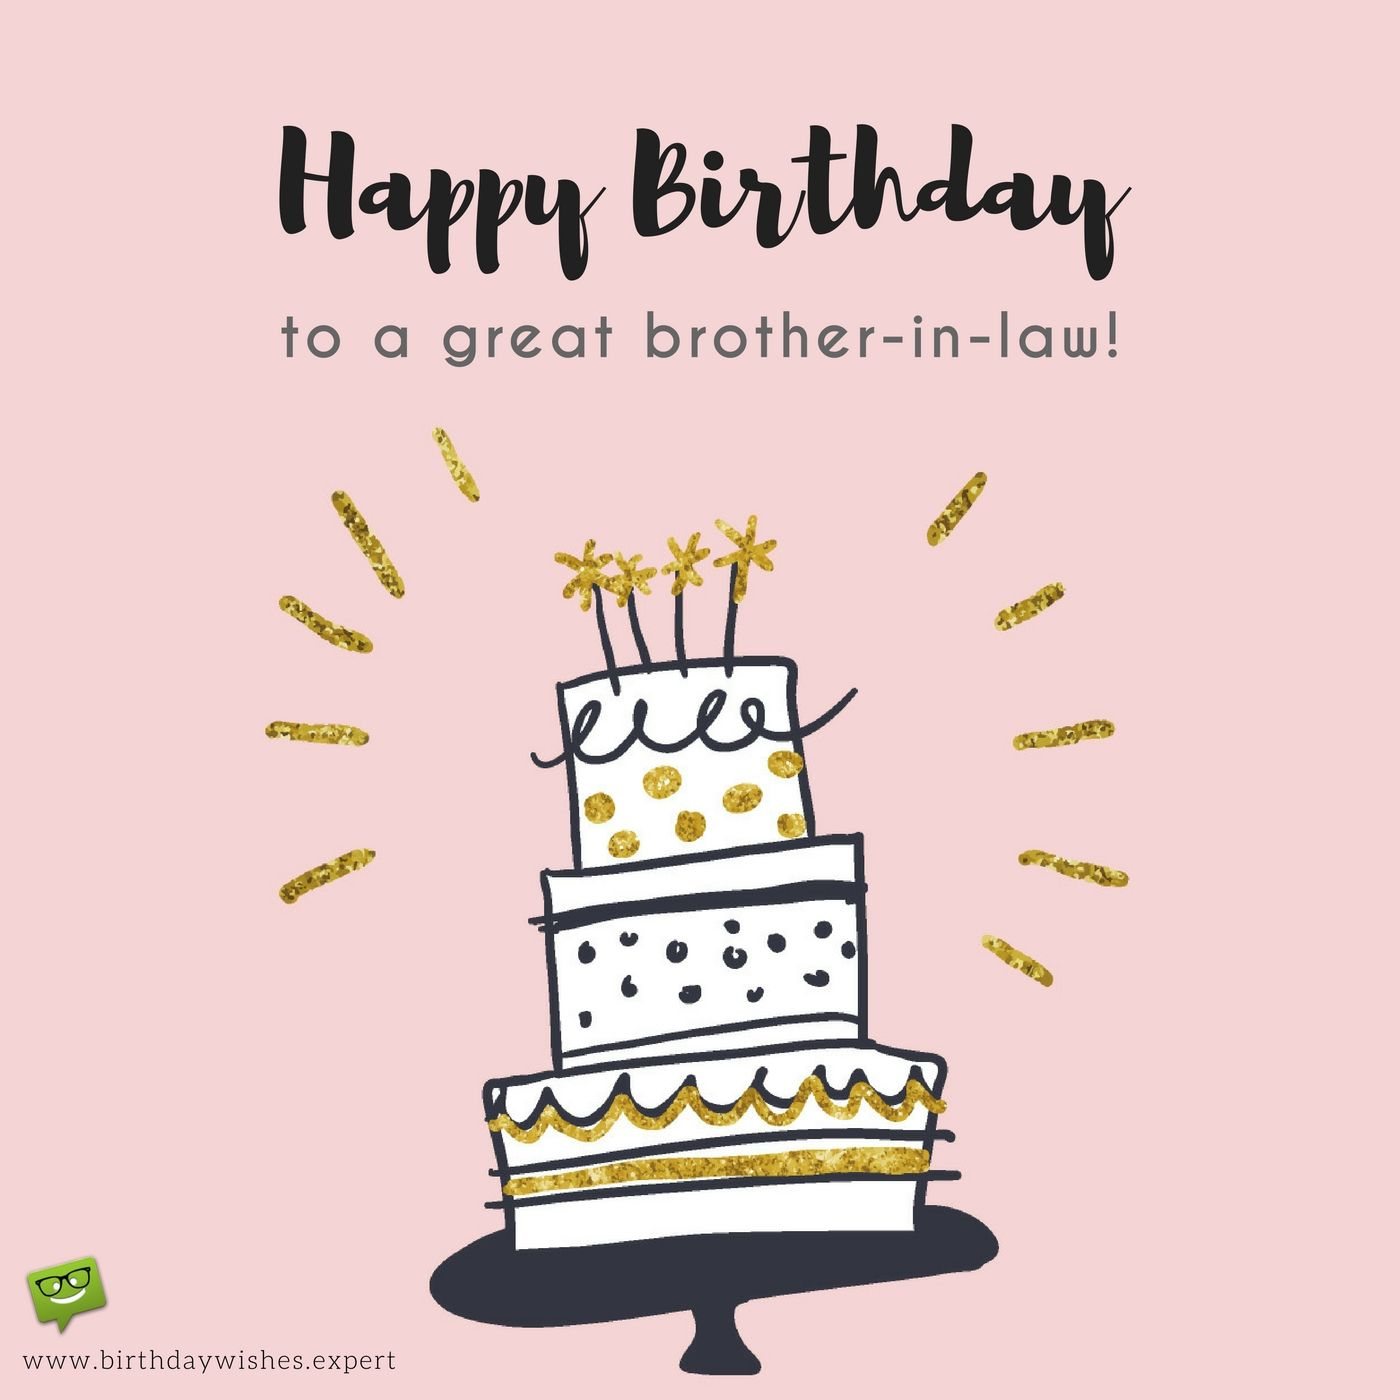 In laws but also friends birthday wishes for your brother in law in laws but also friends birthday wishes for your brother in law kristyandbryce Choice Image